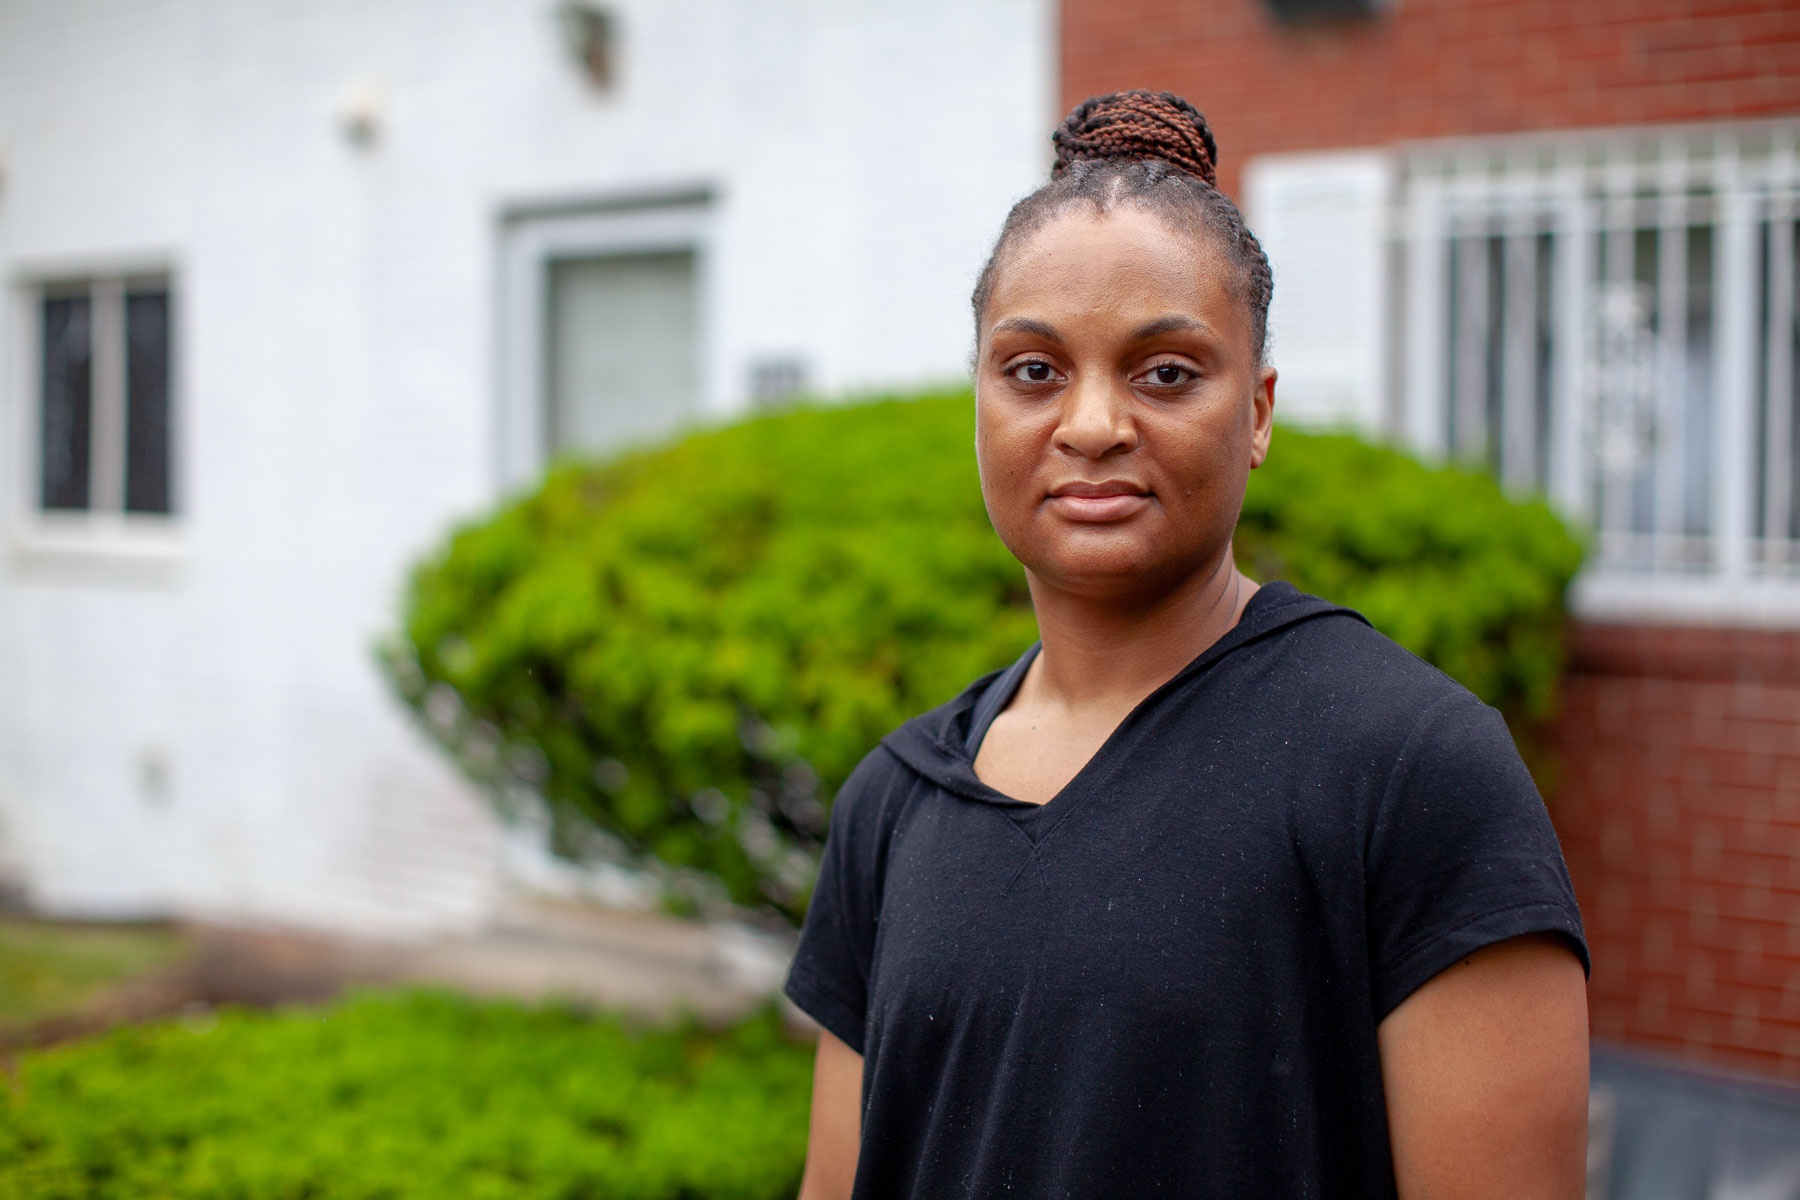 LynnDee Howell, who has lived on Park Hill Drive since she was 7, understands the worries of residents who fear gentrification, but has faith in the team that has emerged to restore the townhouses. (Photo by Quinn Glabicki/PublicSource)